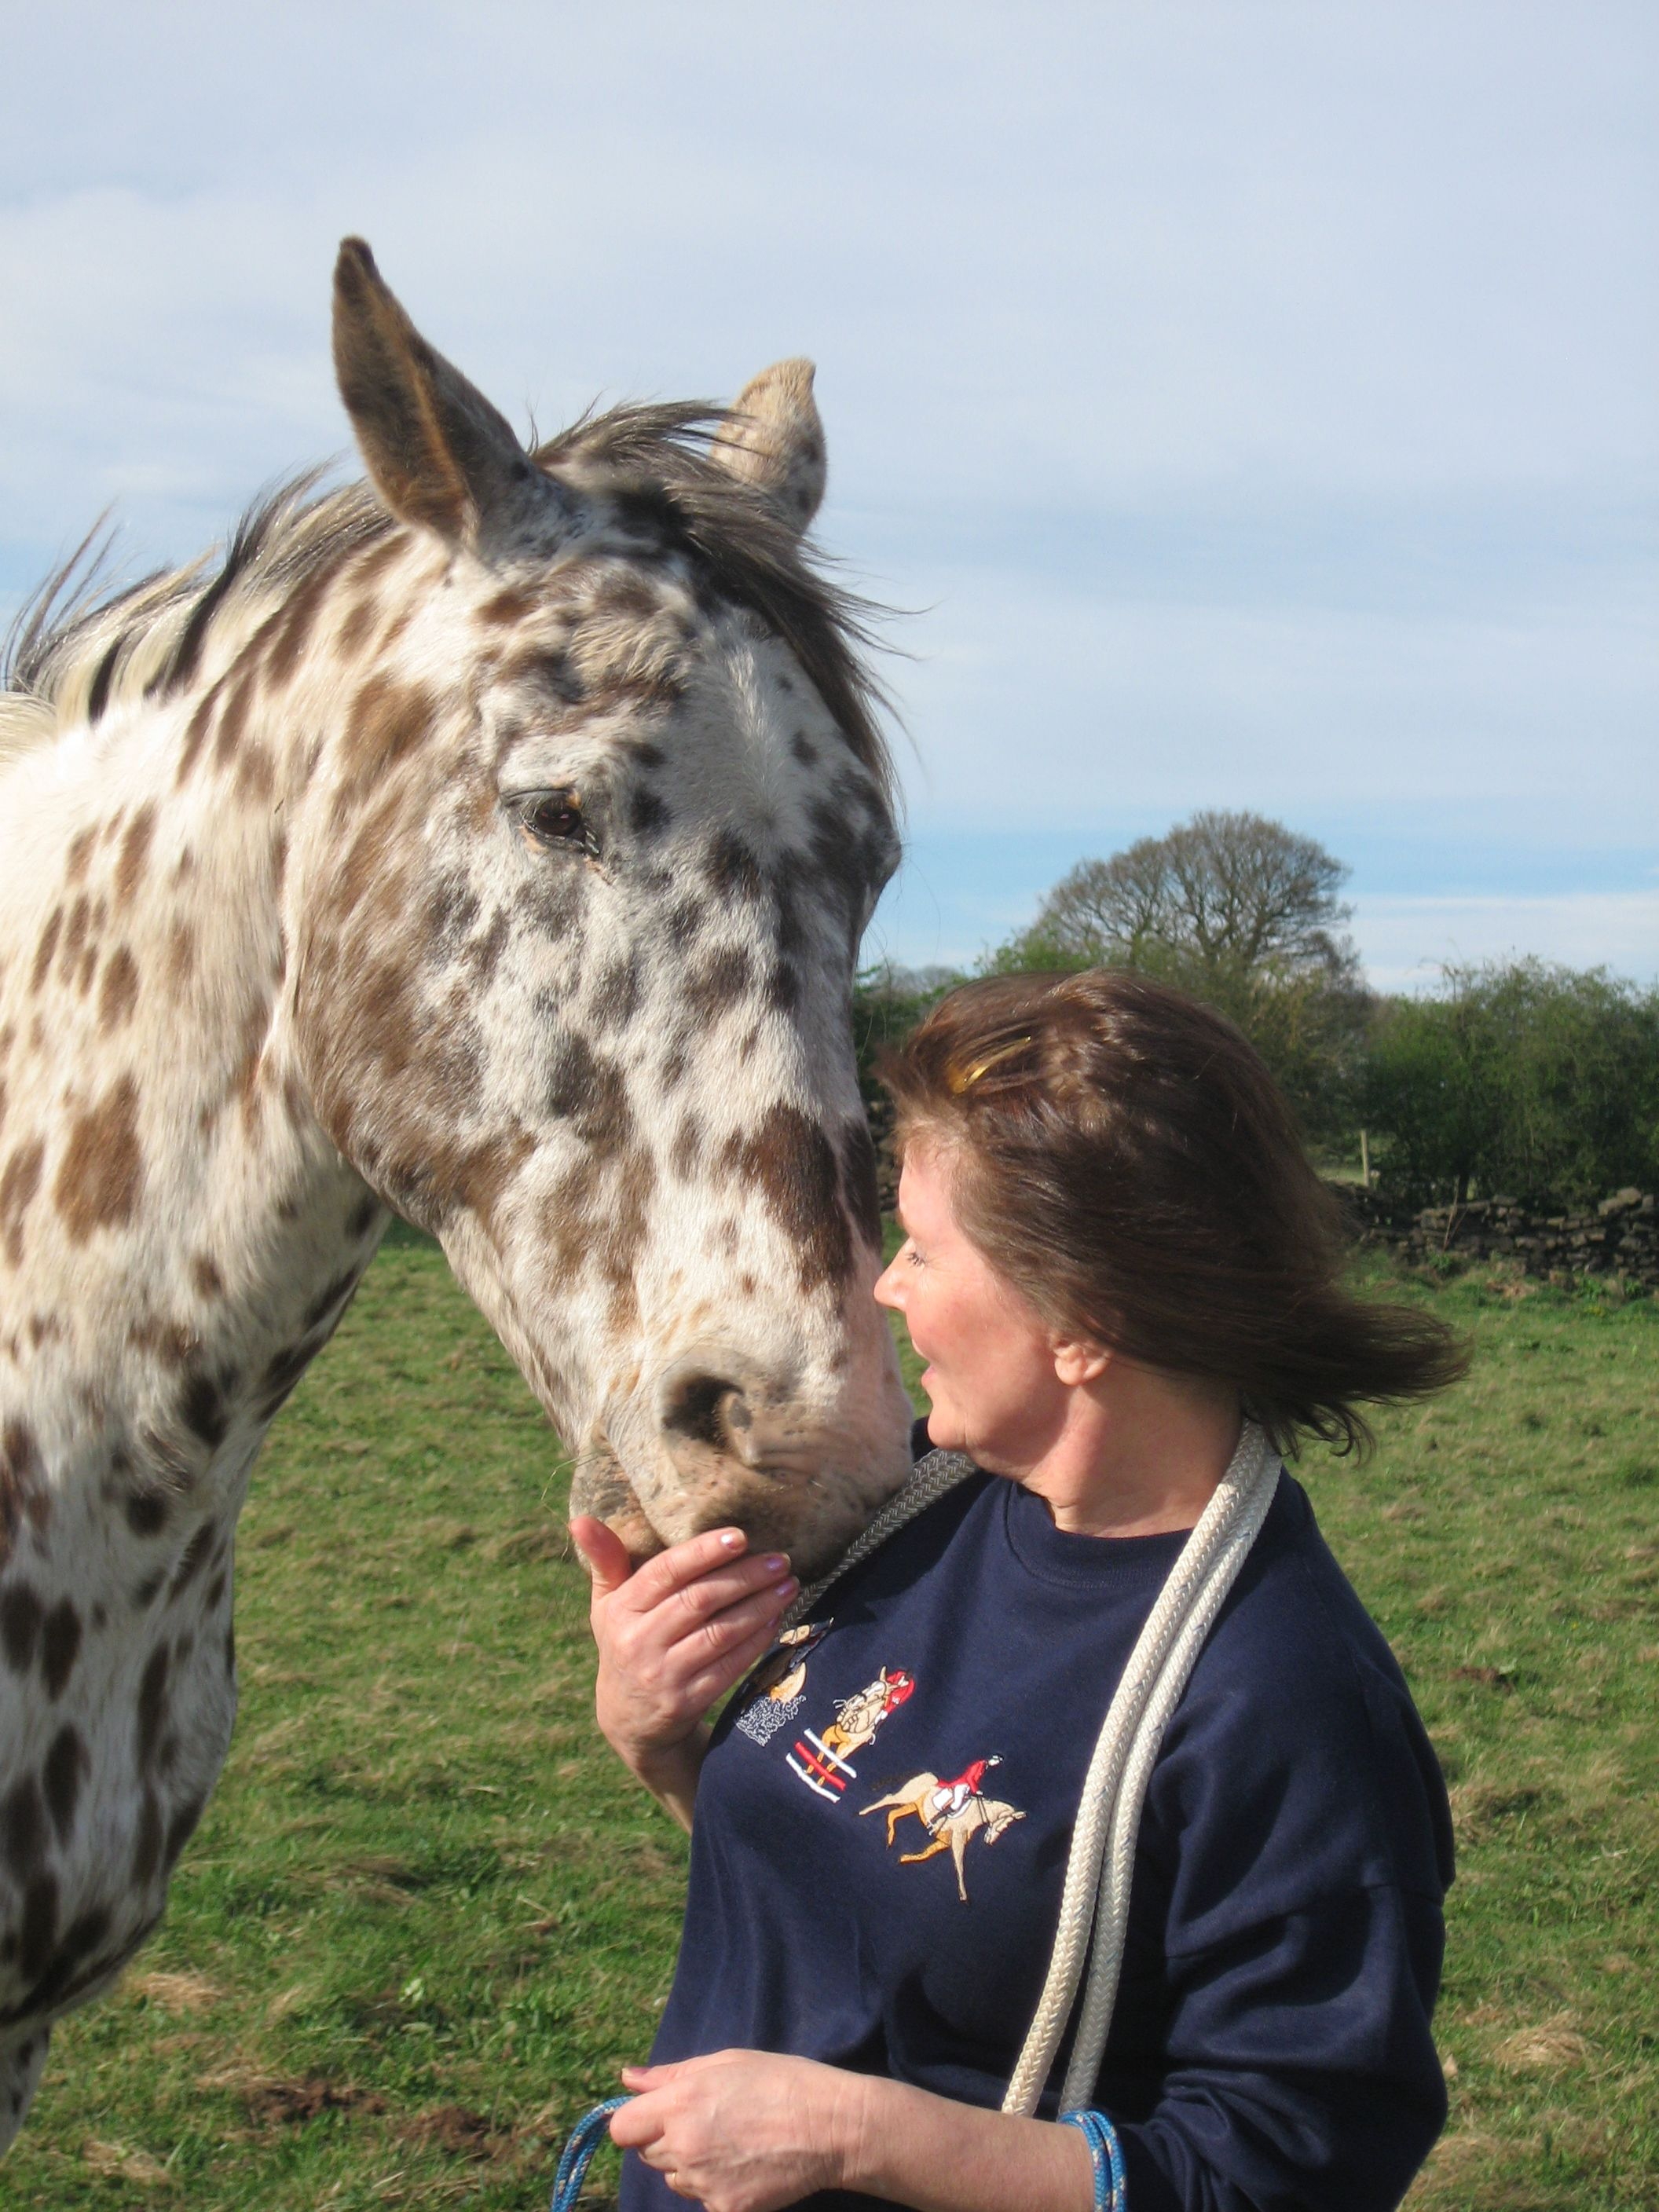 From Kes, Derbyshire | The Jacksons BIG Equestrian Picture Competition #horse #spotty #love #equestrian